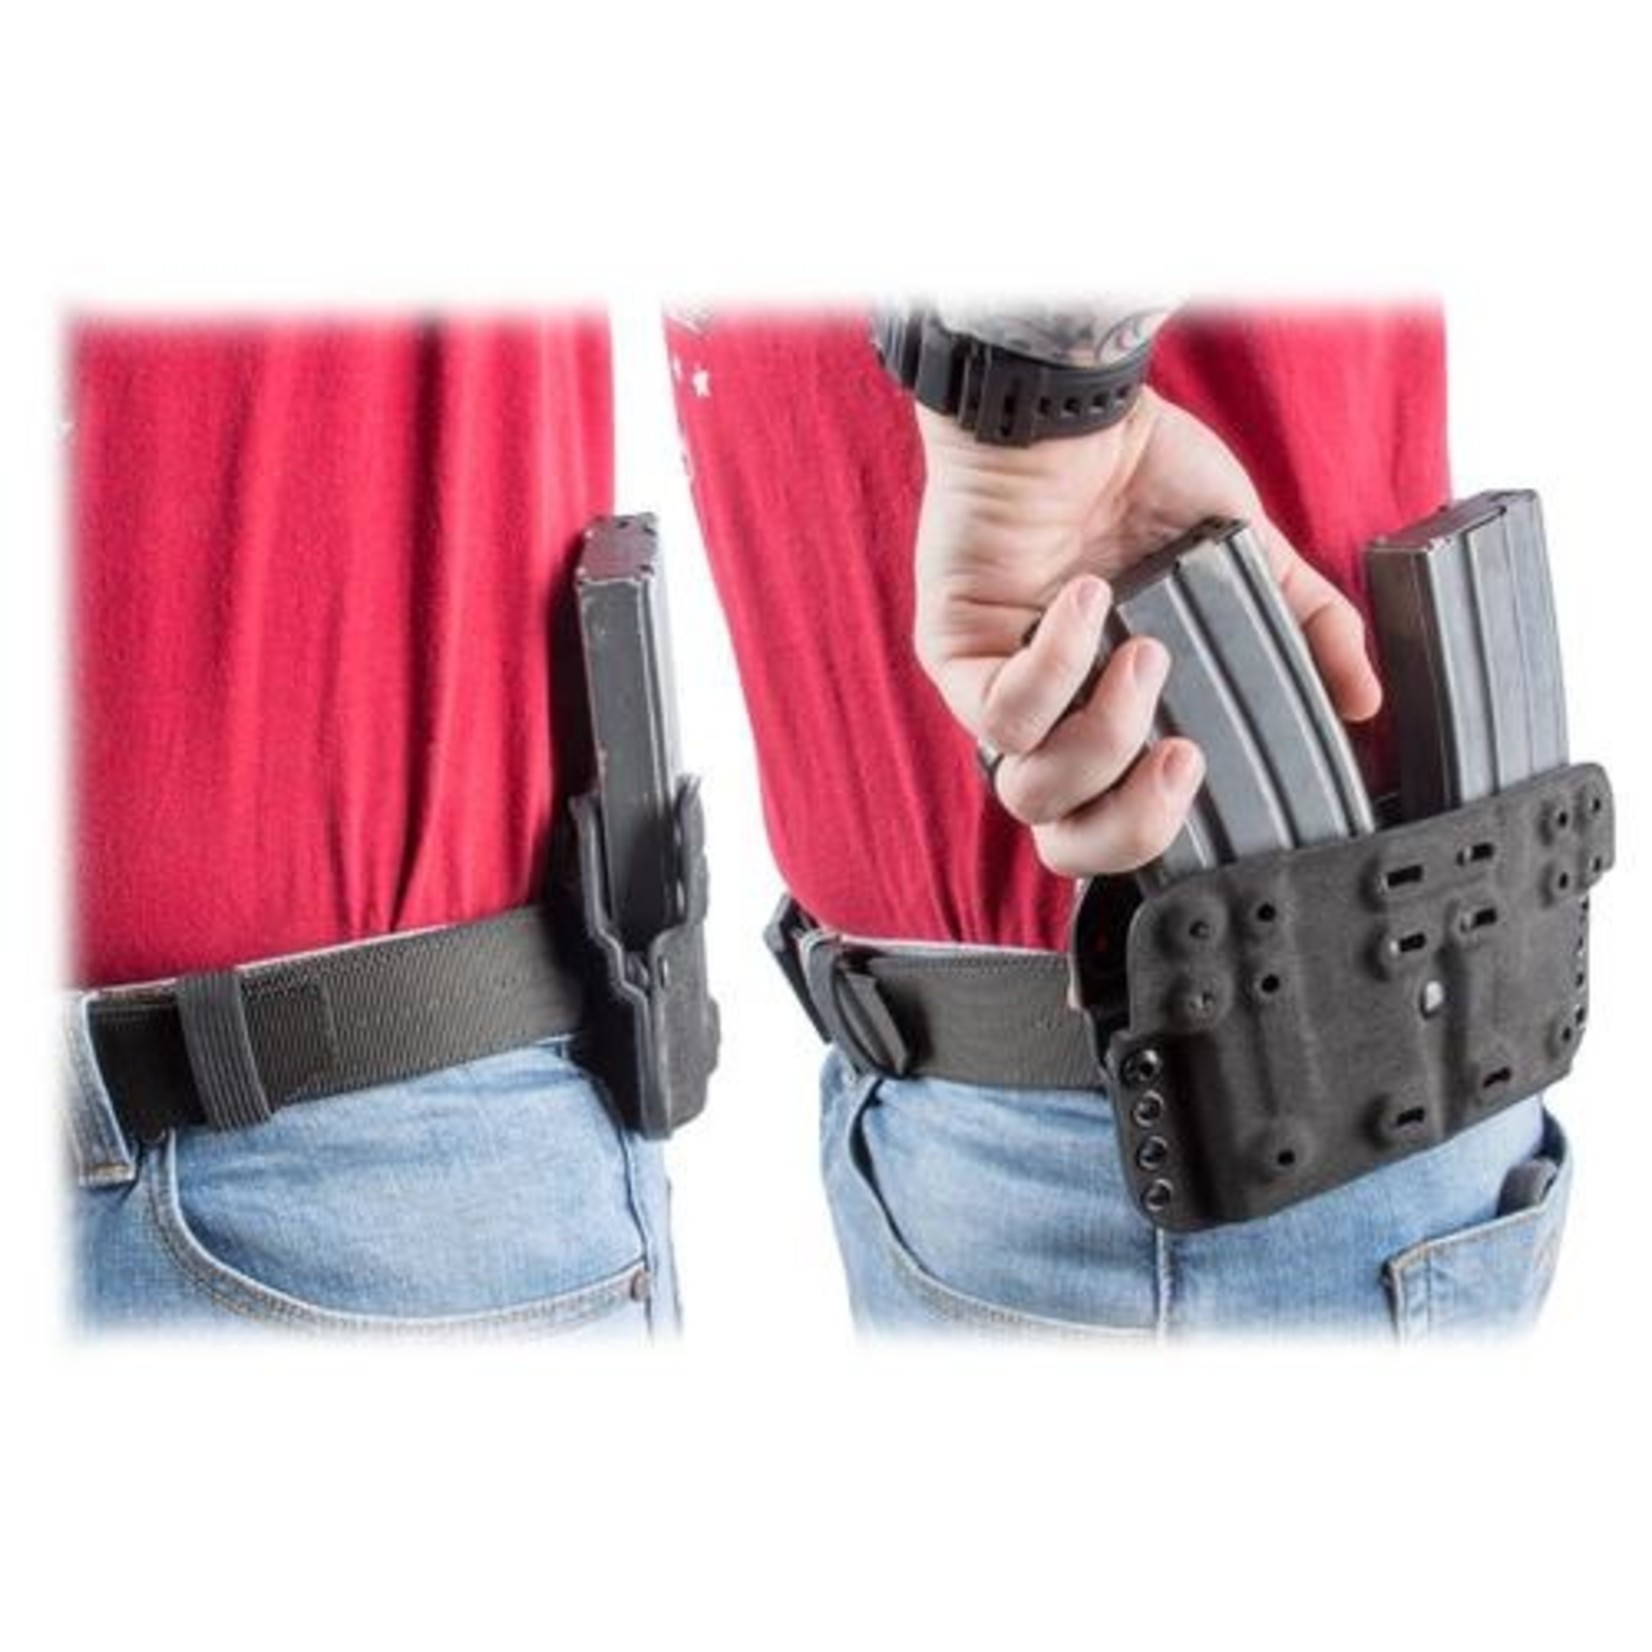 G-CODE D3 501 DOUBLE MAG CARRIER